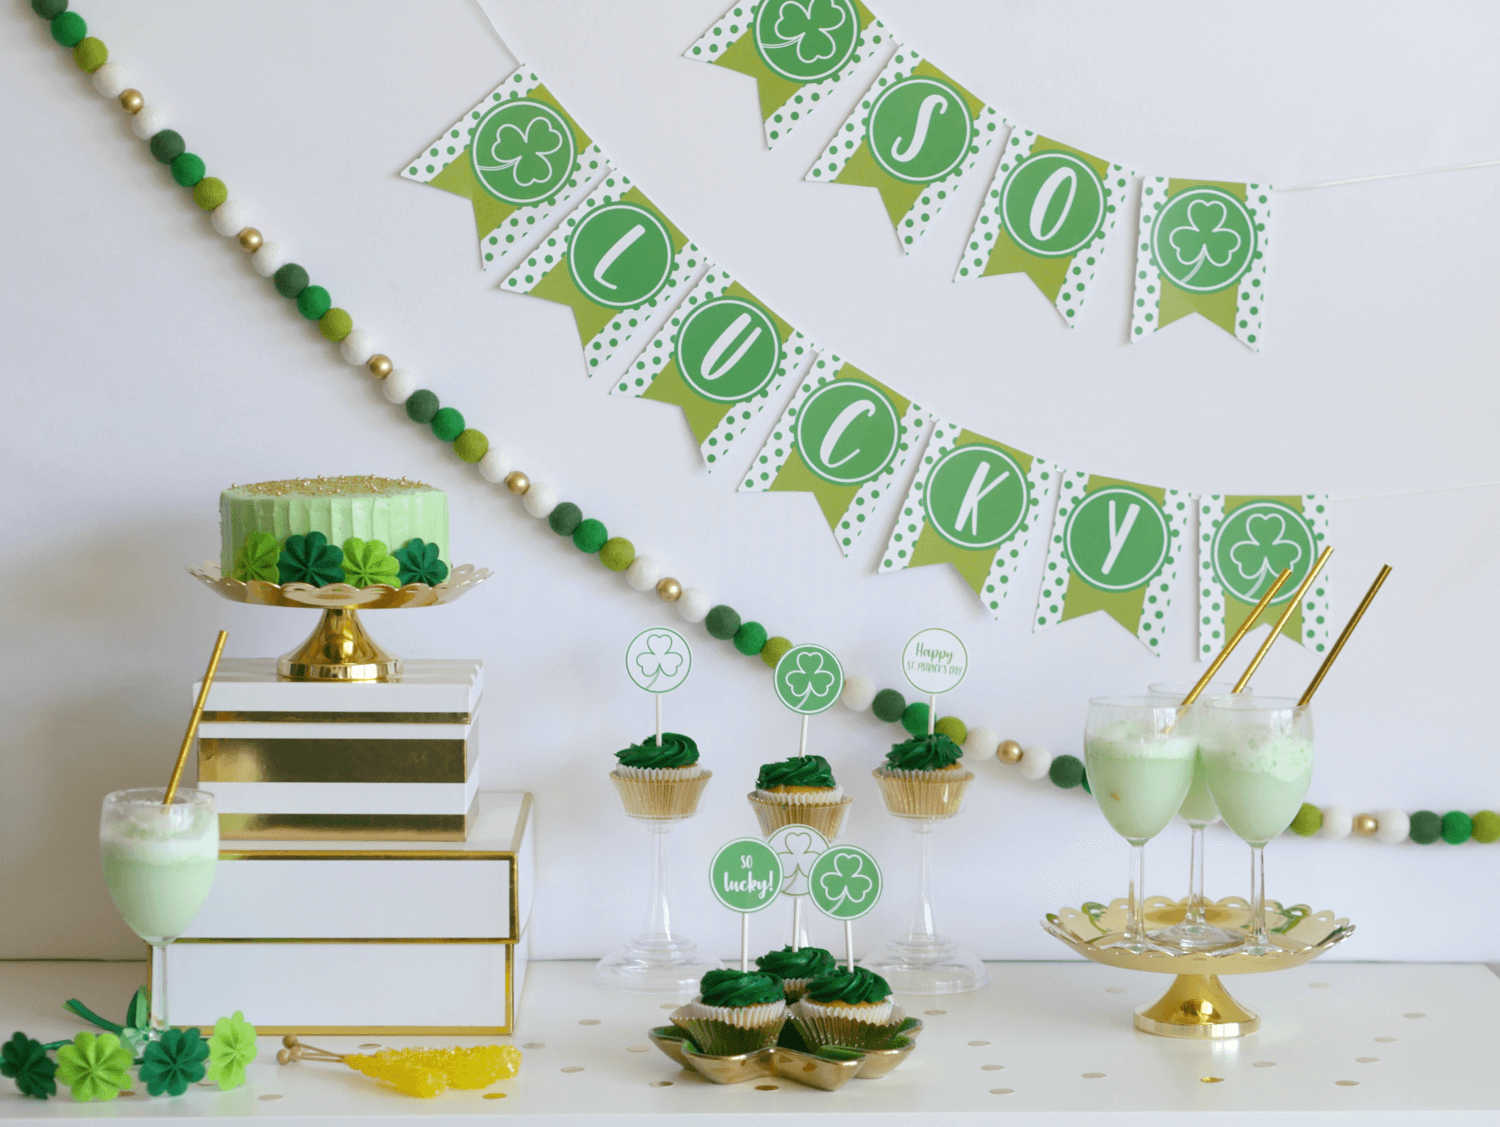 Click for creative and unique St. Patrick's Day party ideas for your dessert table and party decor. Plus, there's even free party printables. Styling by Mint Event Design www.minteventdesign.com #partyideas #partydecorations #freeprintables #saintpatricksday #stpatricksday #shamrock